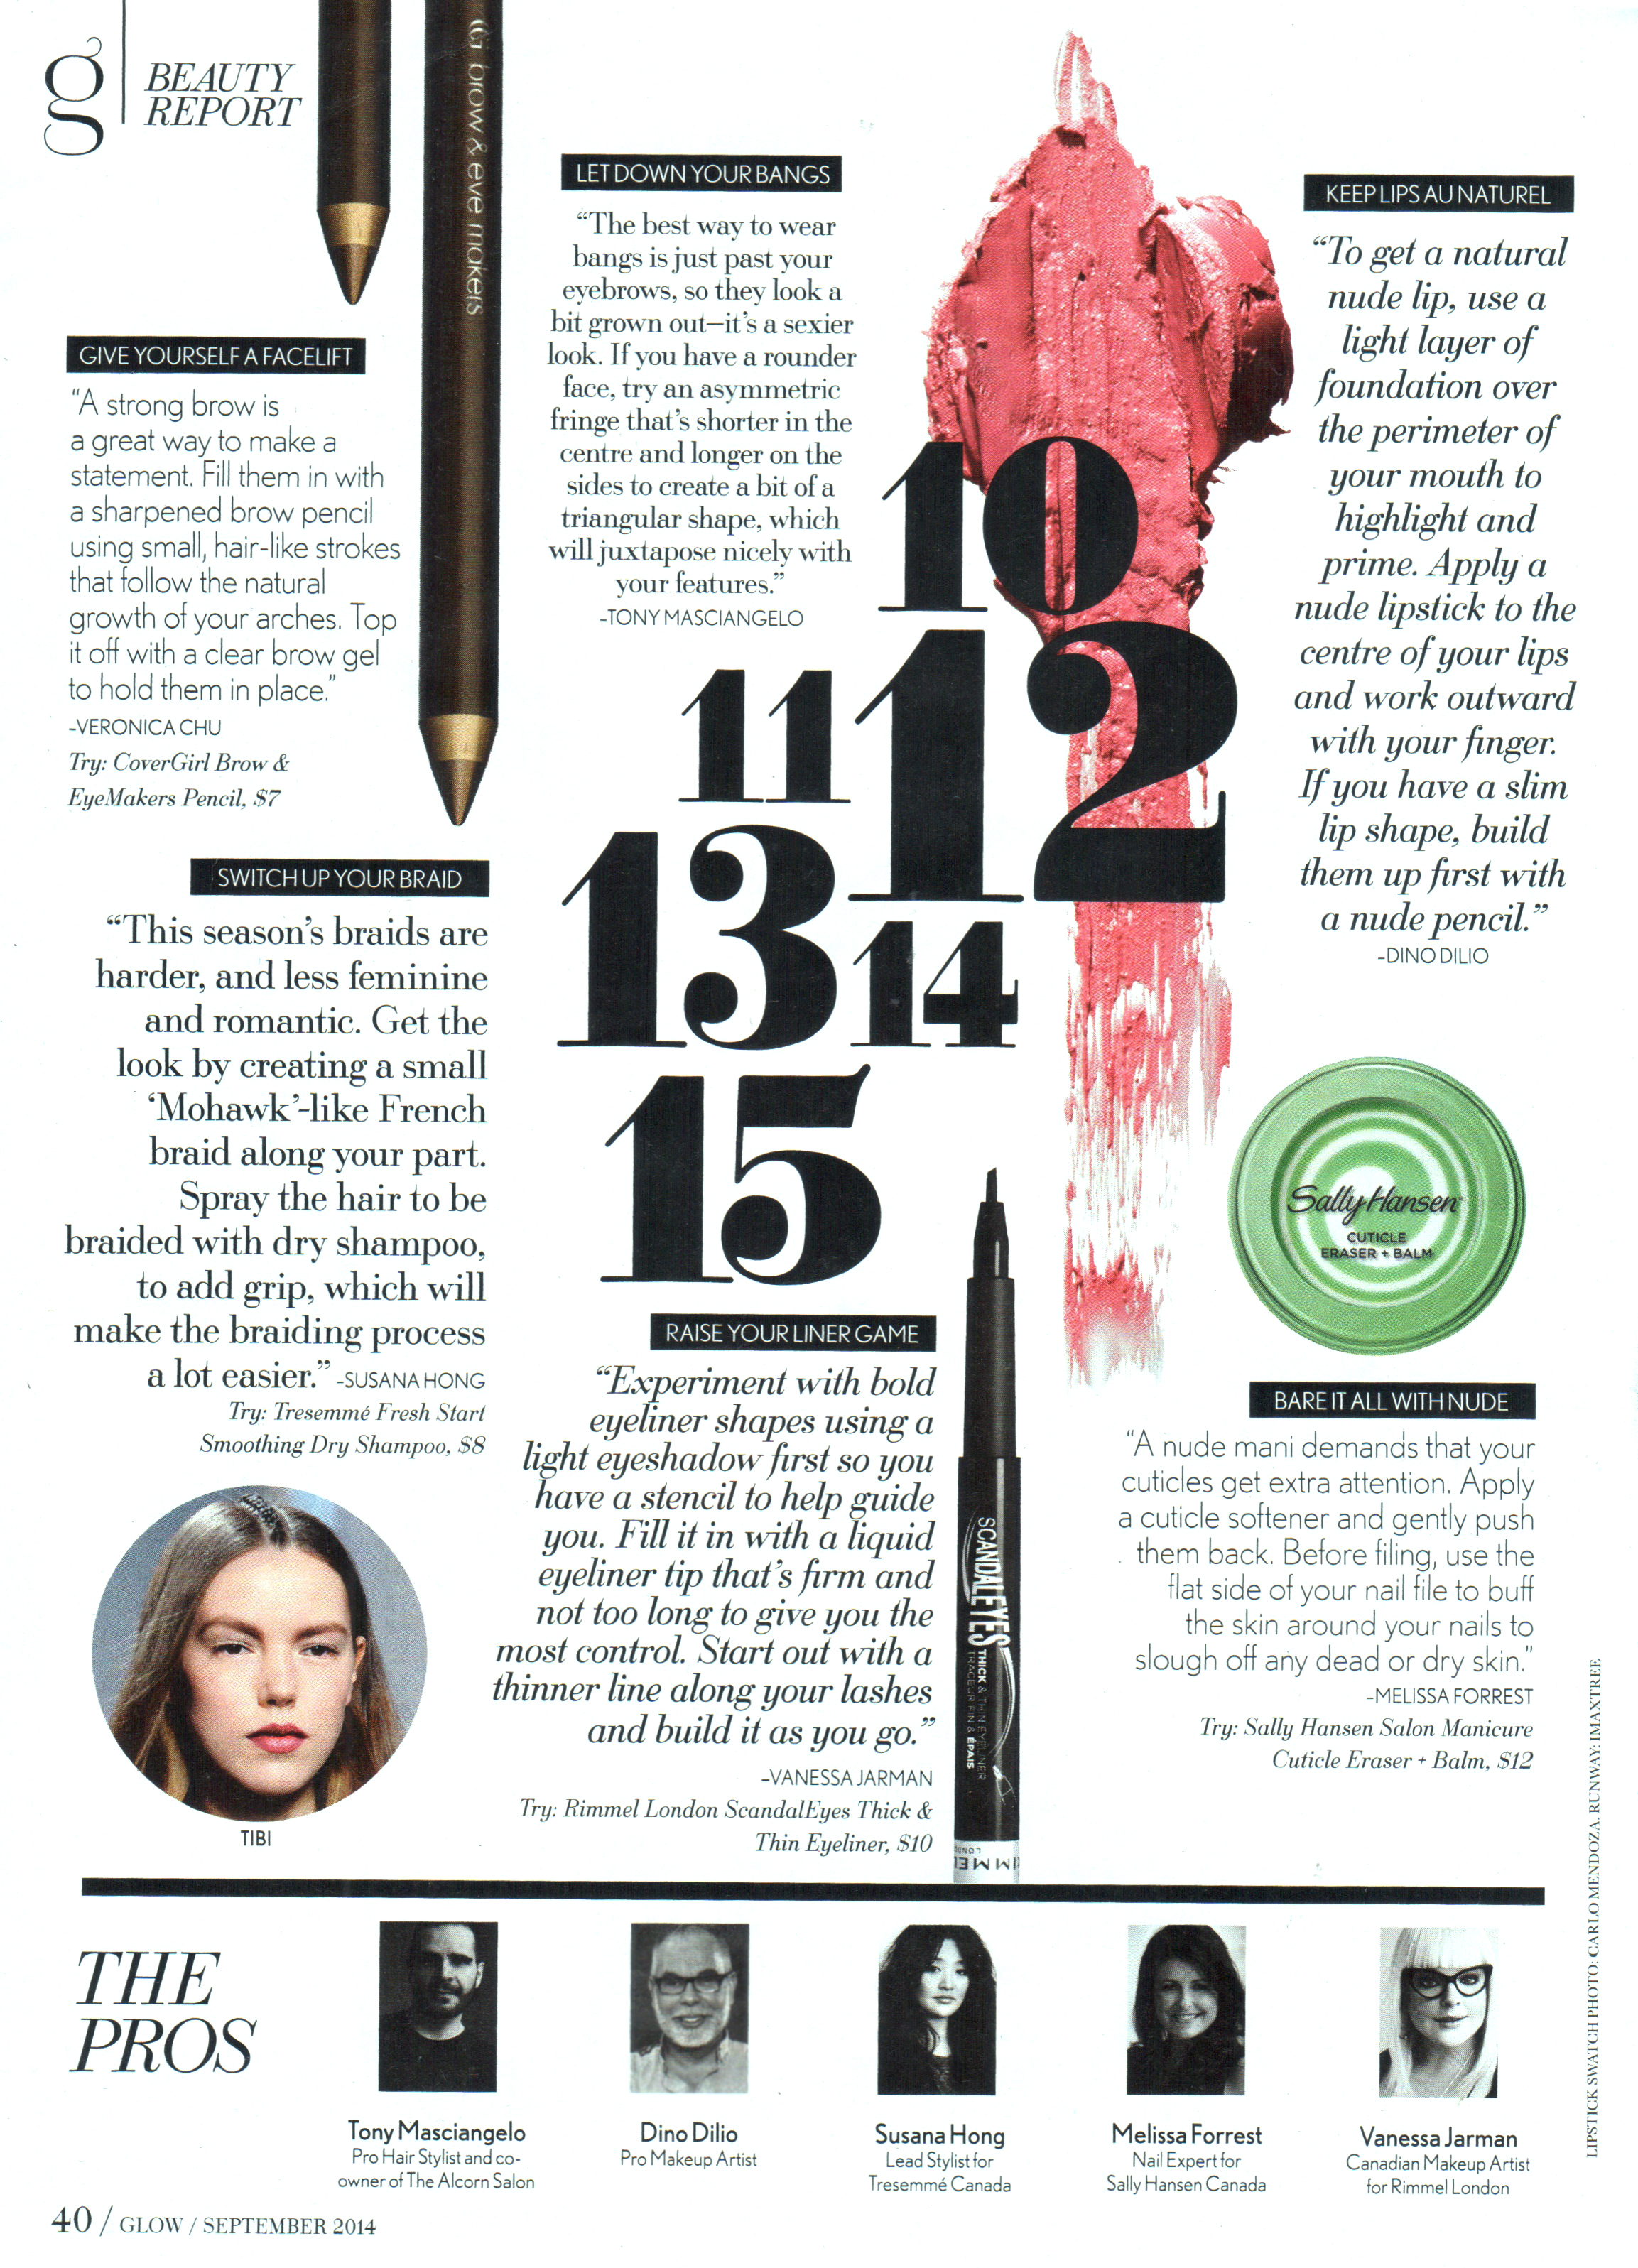 Glow Magazine | September 2014 Issue, Beauty Report - Keep Lips Au Naturel